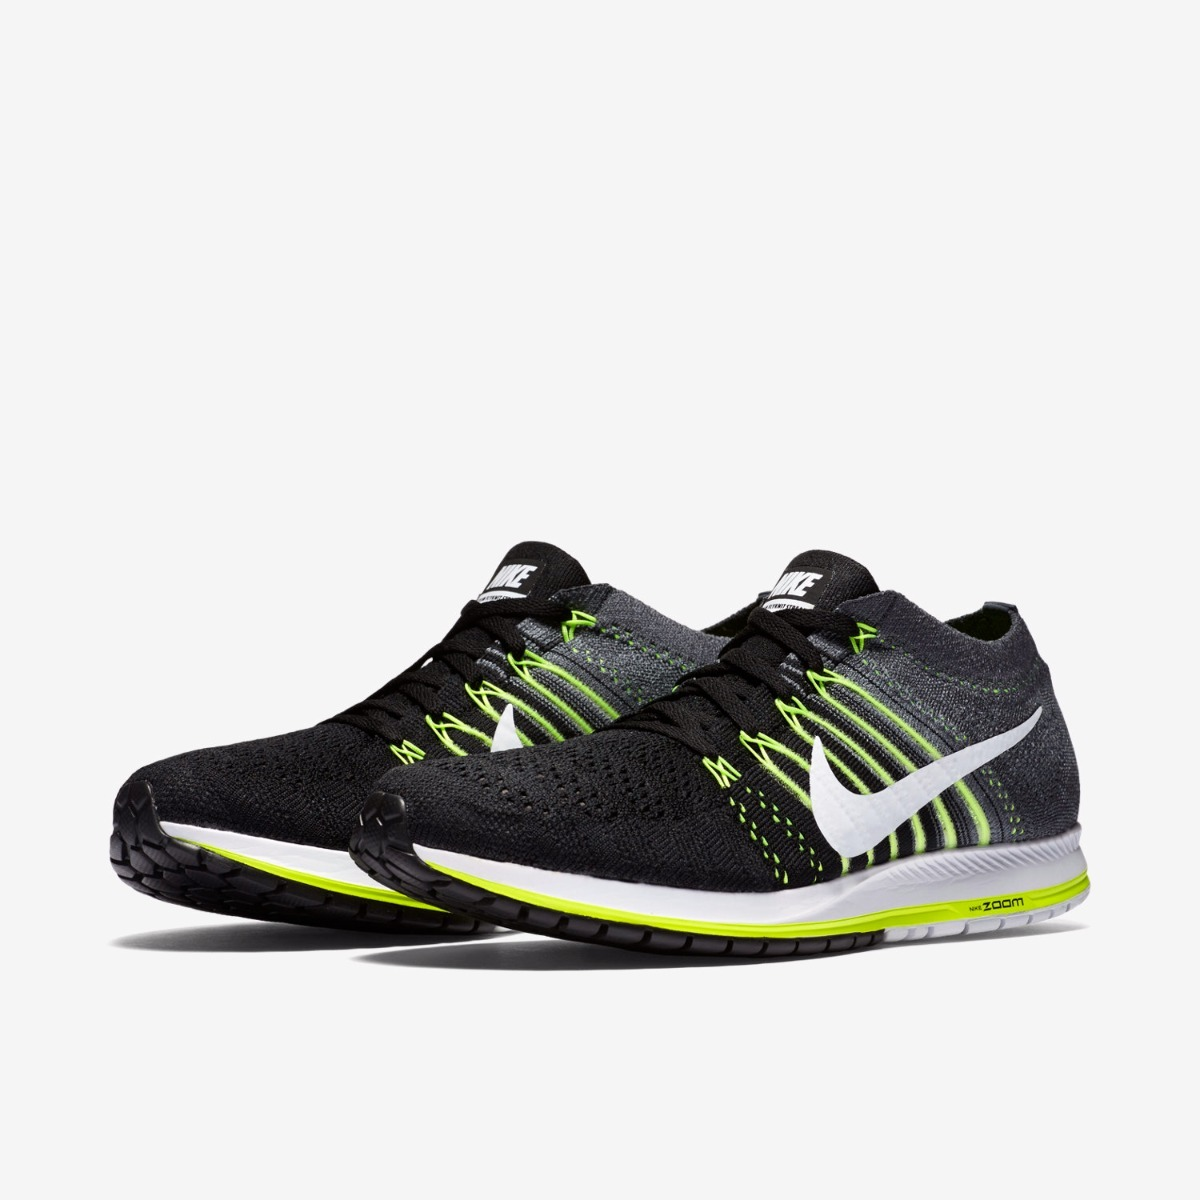 a233c0816f2 ... sale dc1f6 d05af zapatillas nike flyknit streak running pro originales. cargando  zoom. first rate